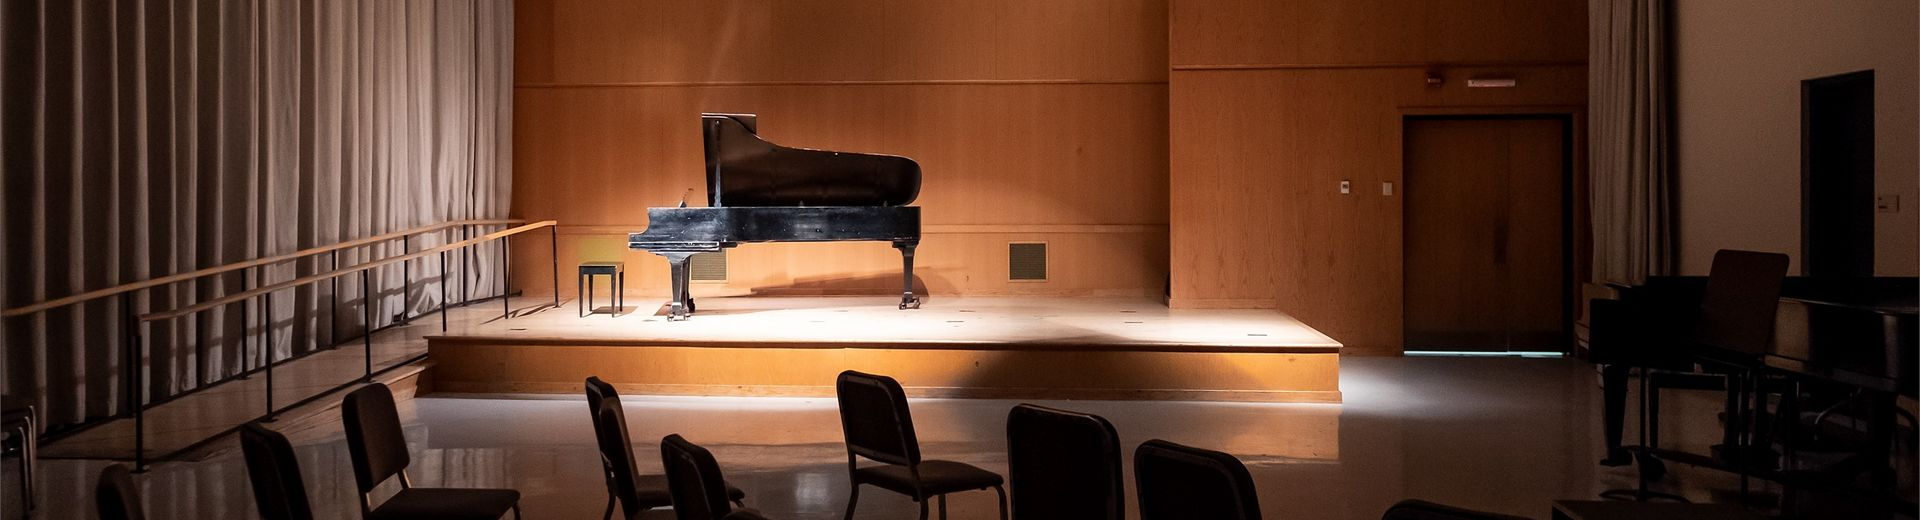 A piano sits on a stage with low lighting.